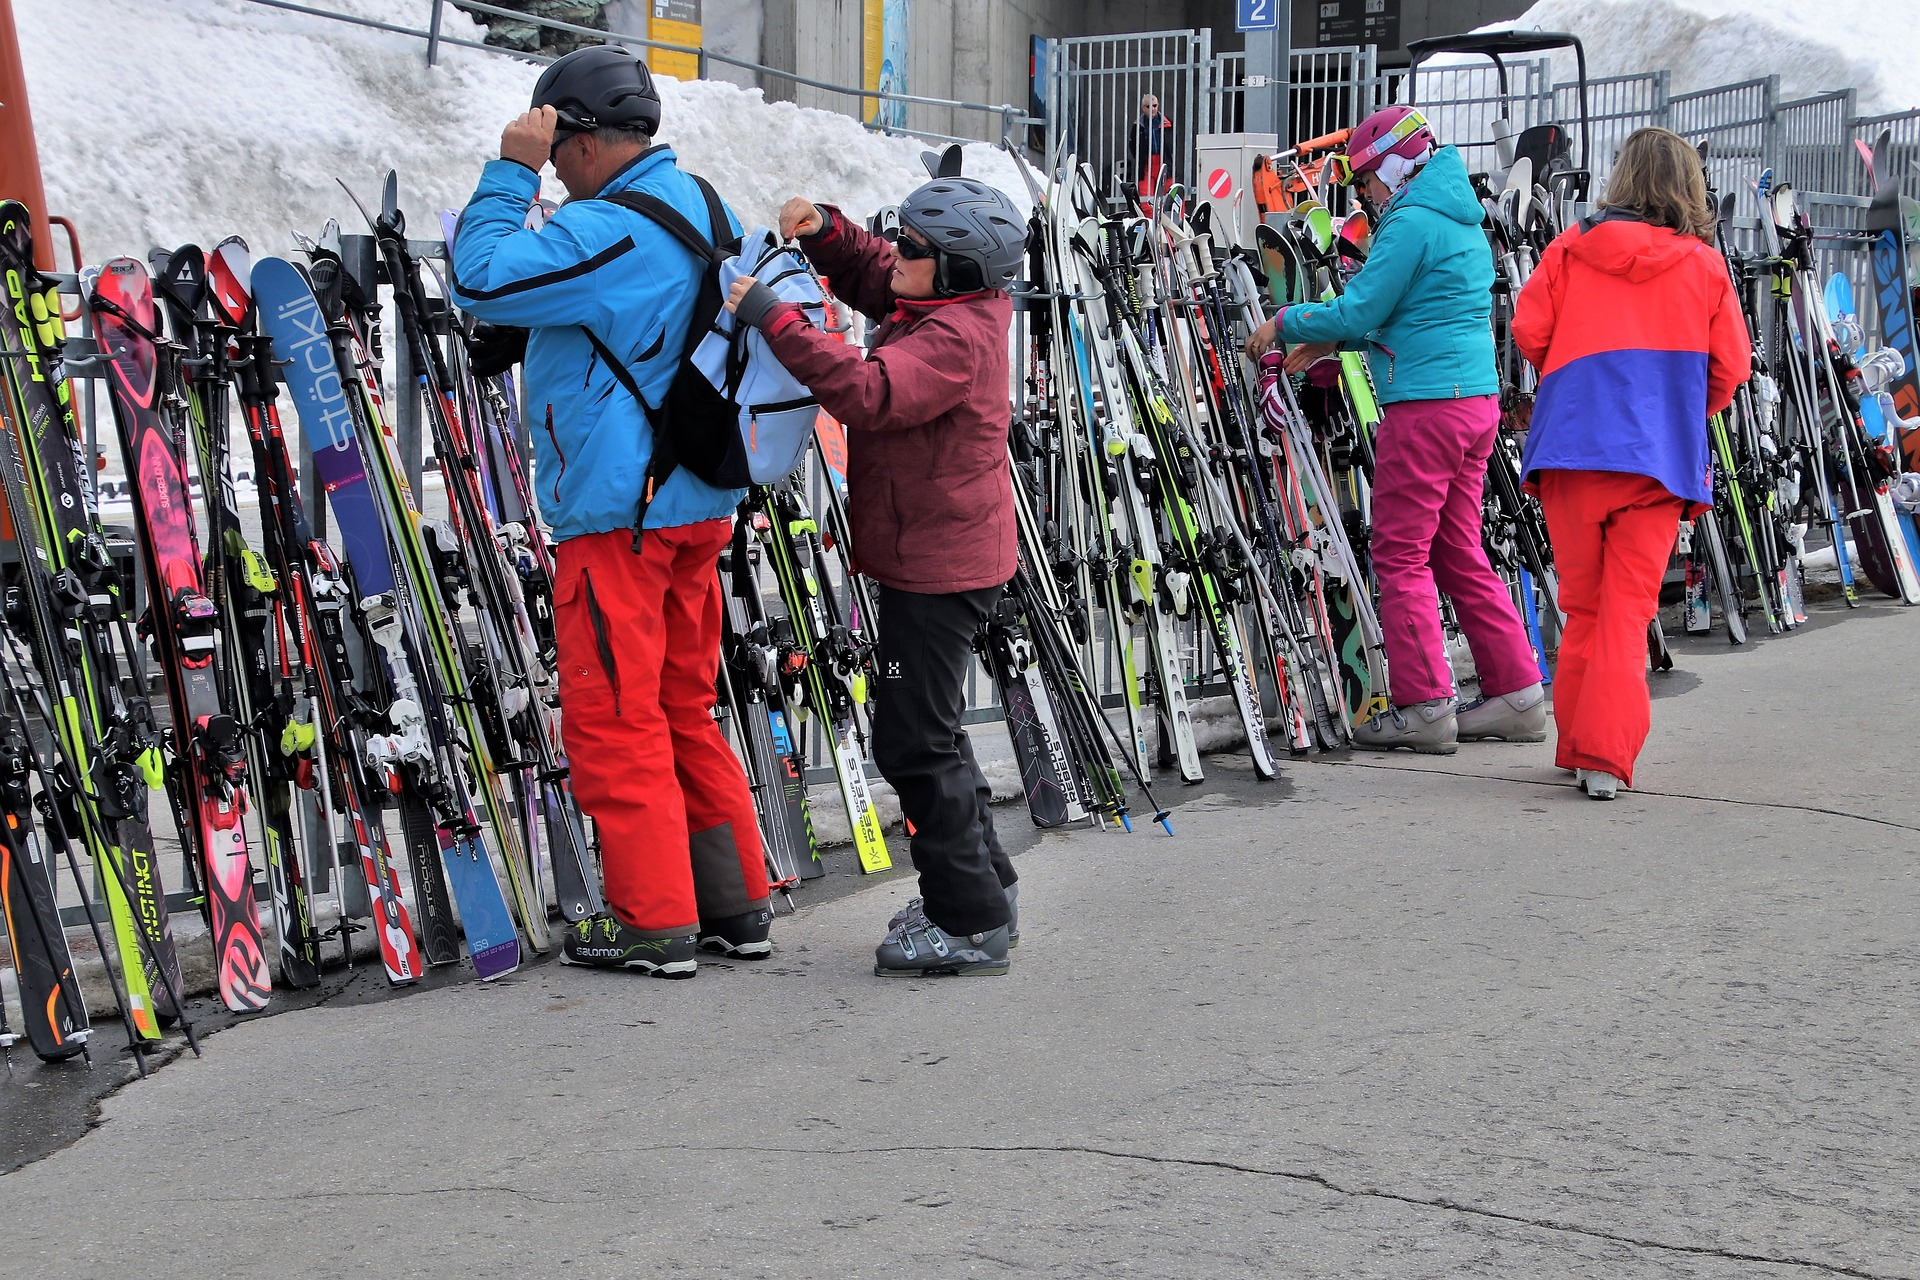 Top 4 Online Ski Outlet For Buying Ski Equipments